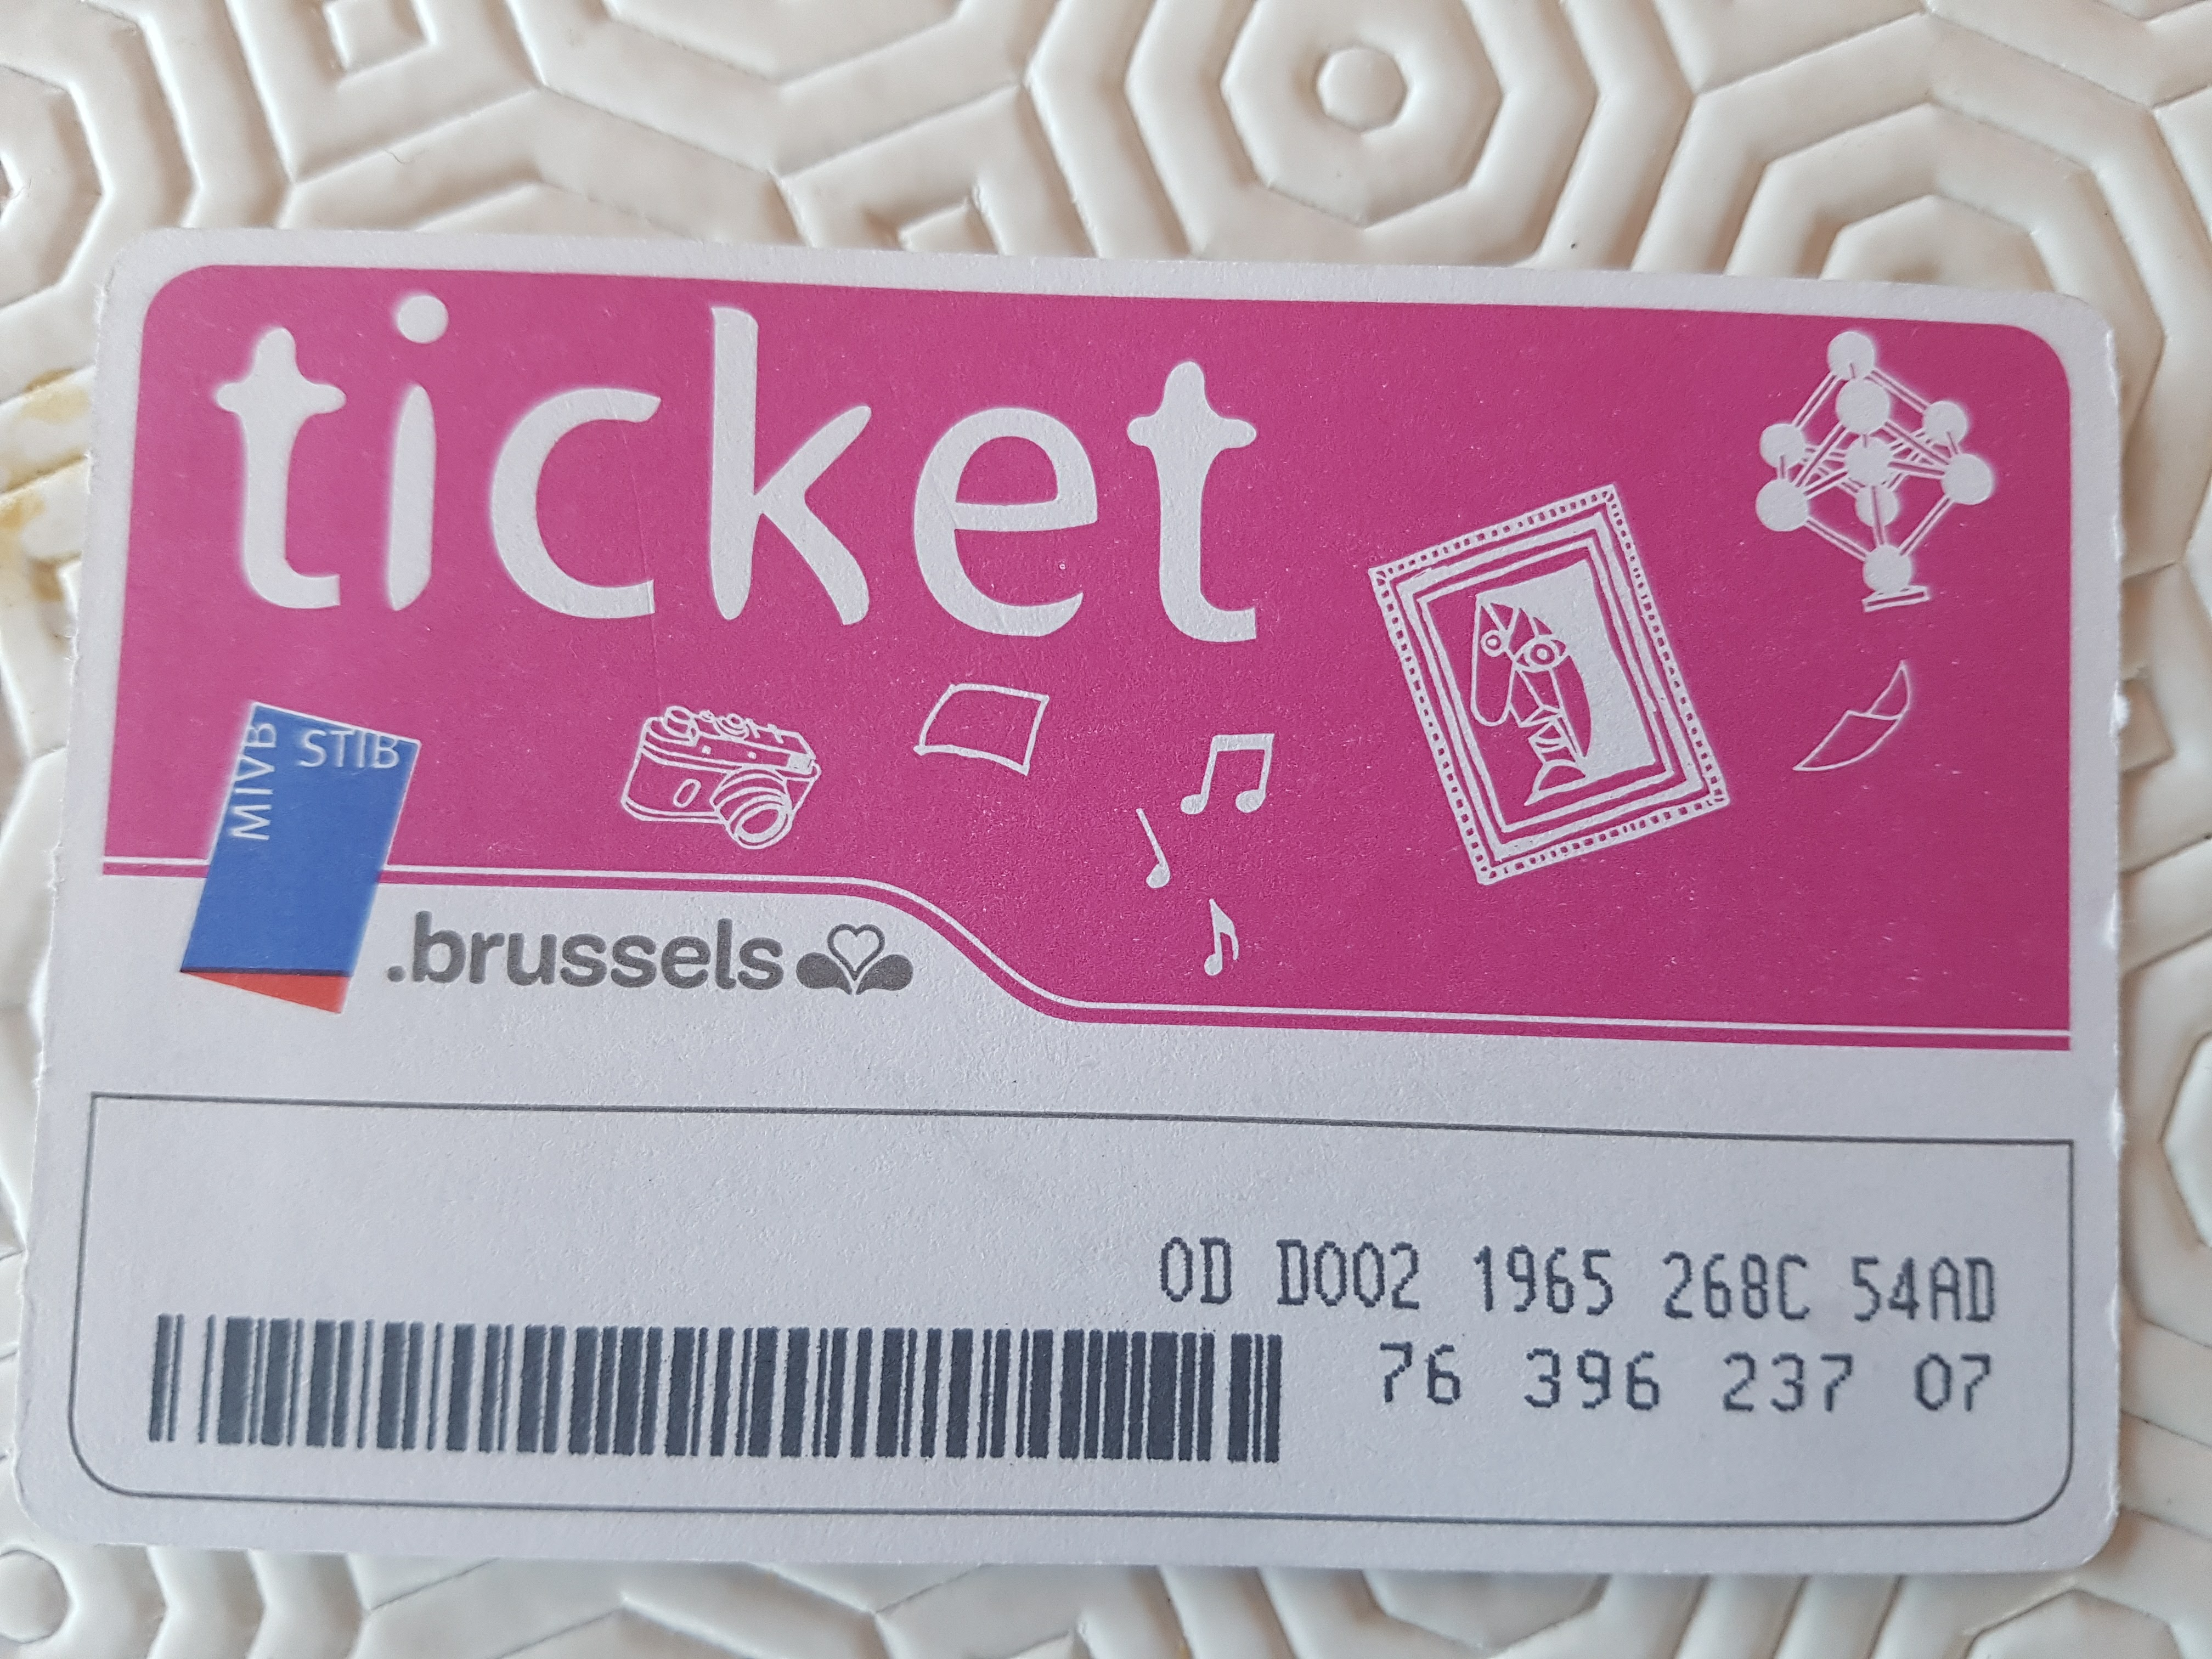 Metro-Ticket-Brussels.jpg